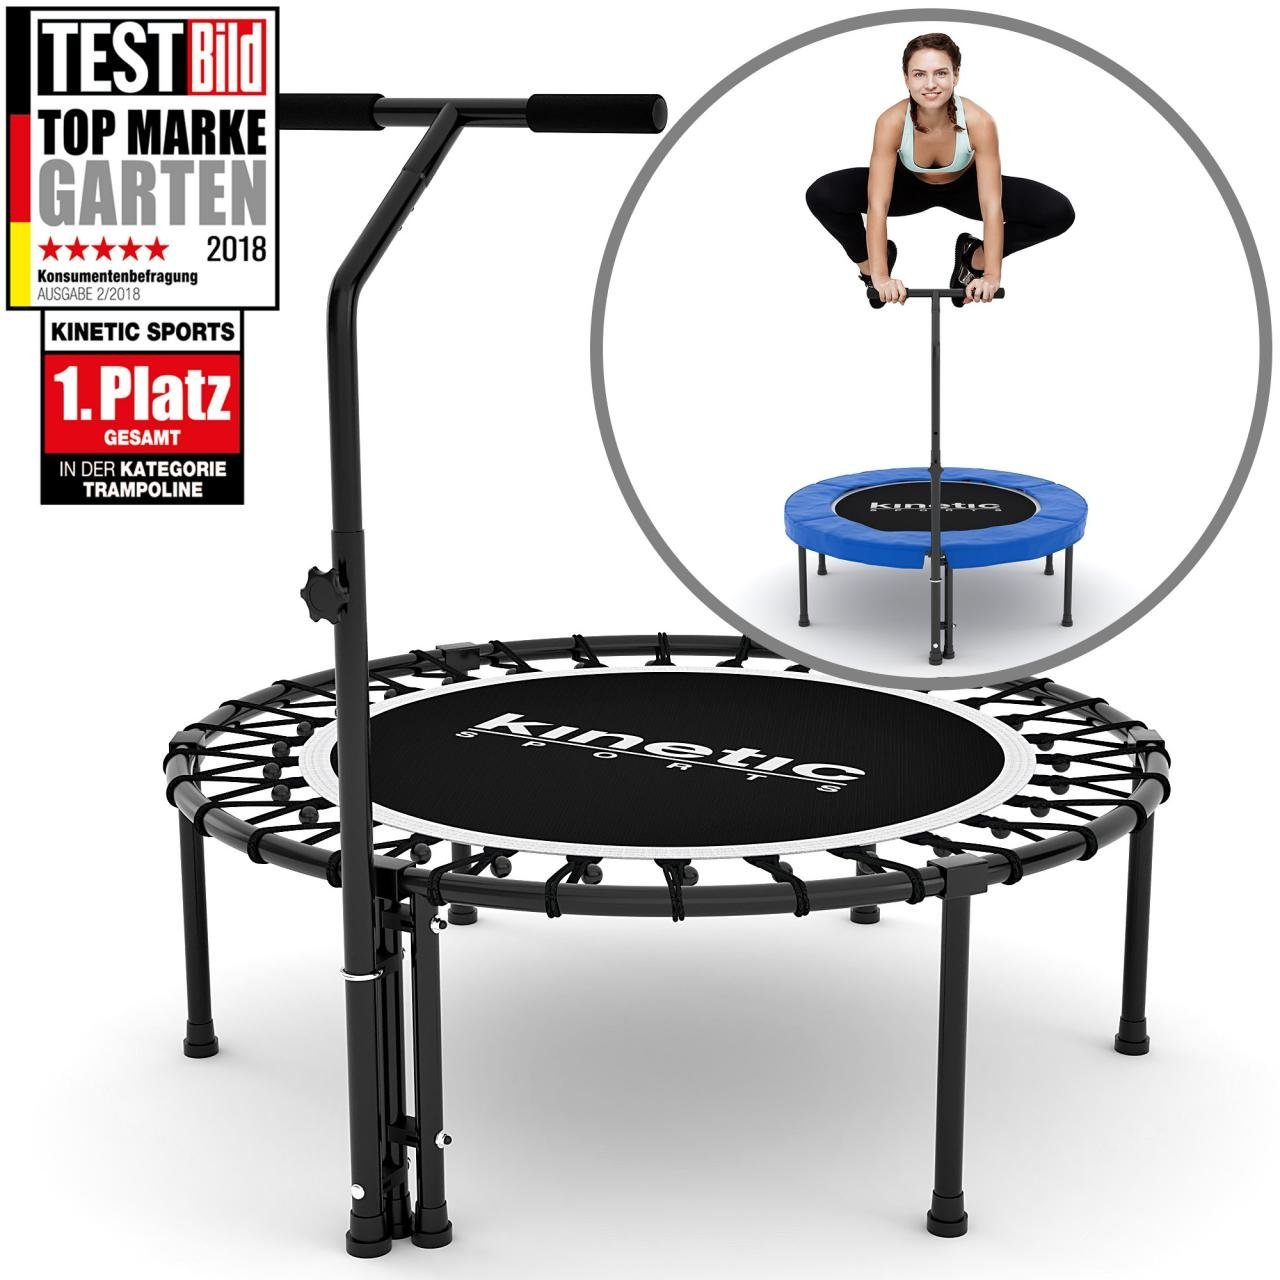 Kinetic Sports Indoor Fitness Trampolin Mit Griff Und Gelenkschonender Federung Trampolintests De